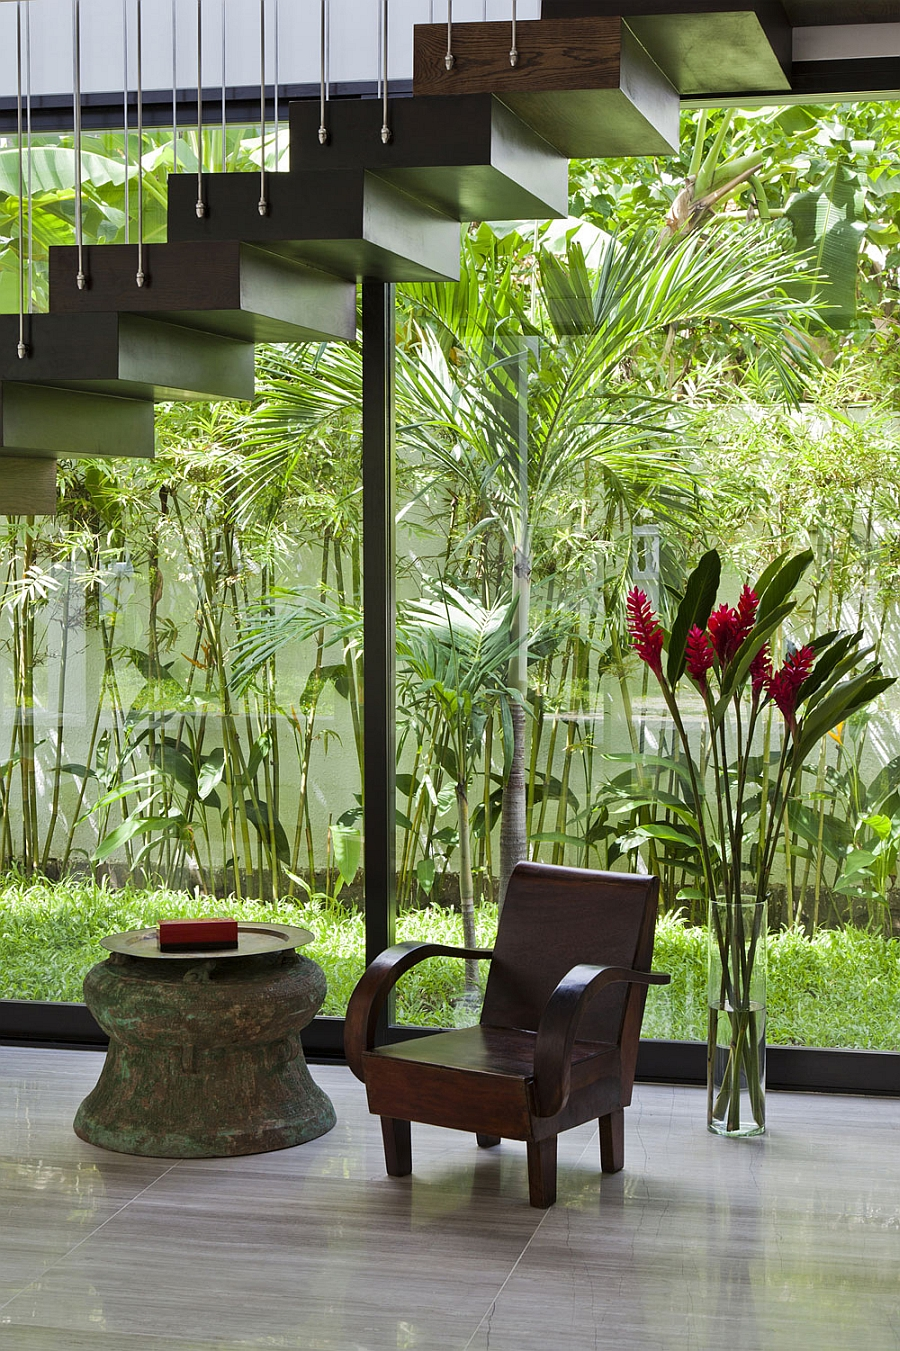 Natural greenery outside becomes a part of the indoors